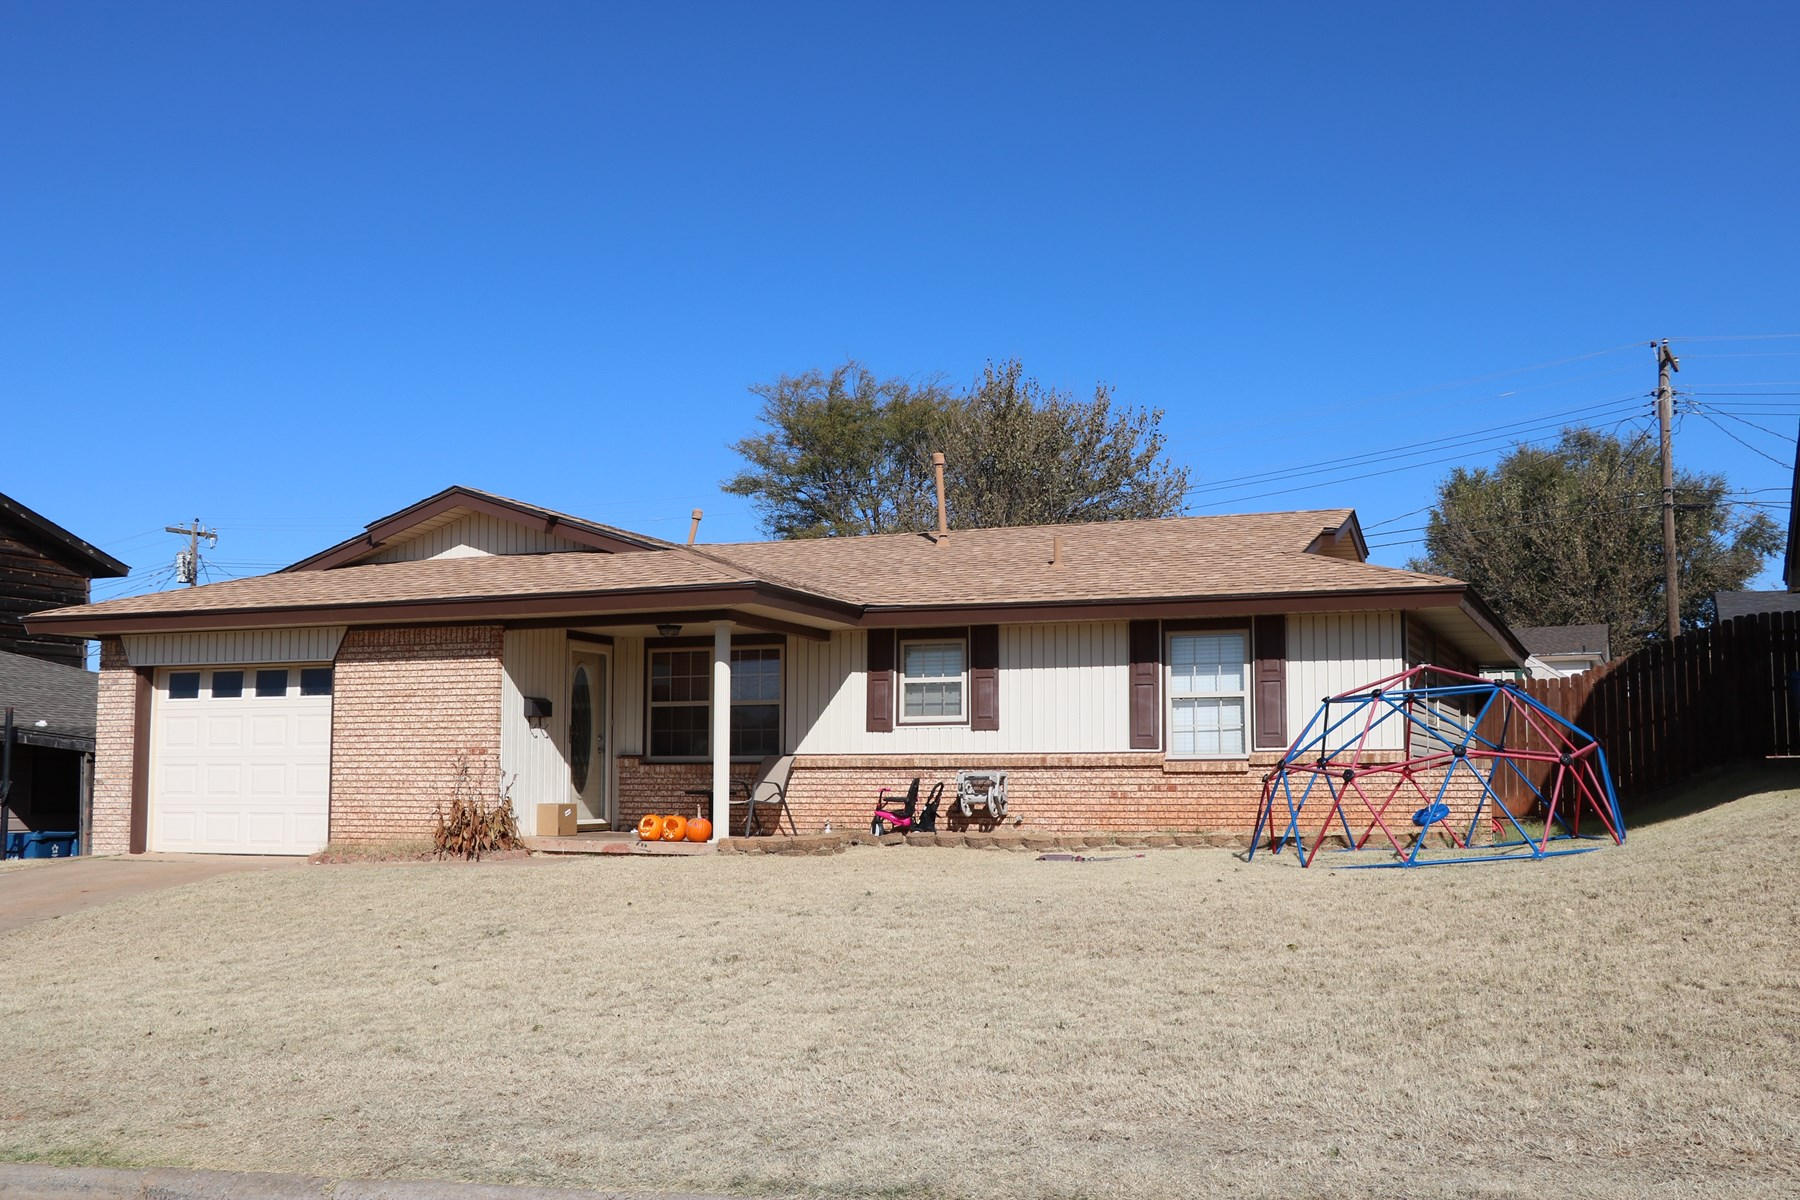 House for Sale in Cordell, OK